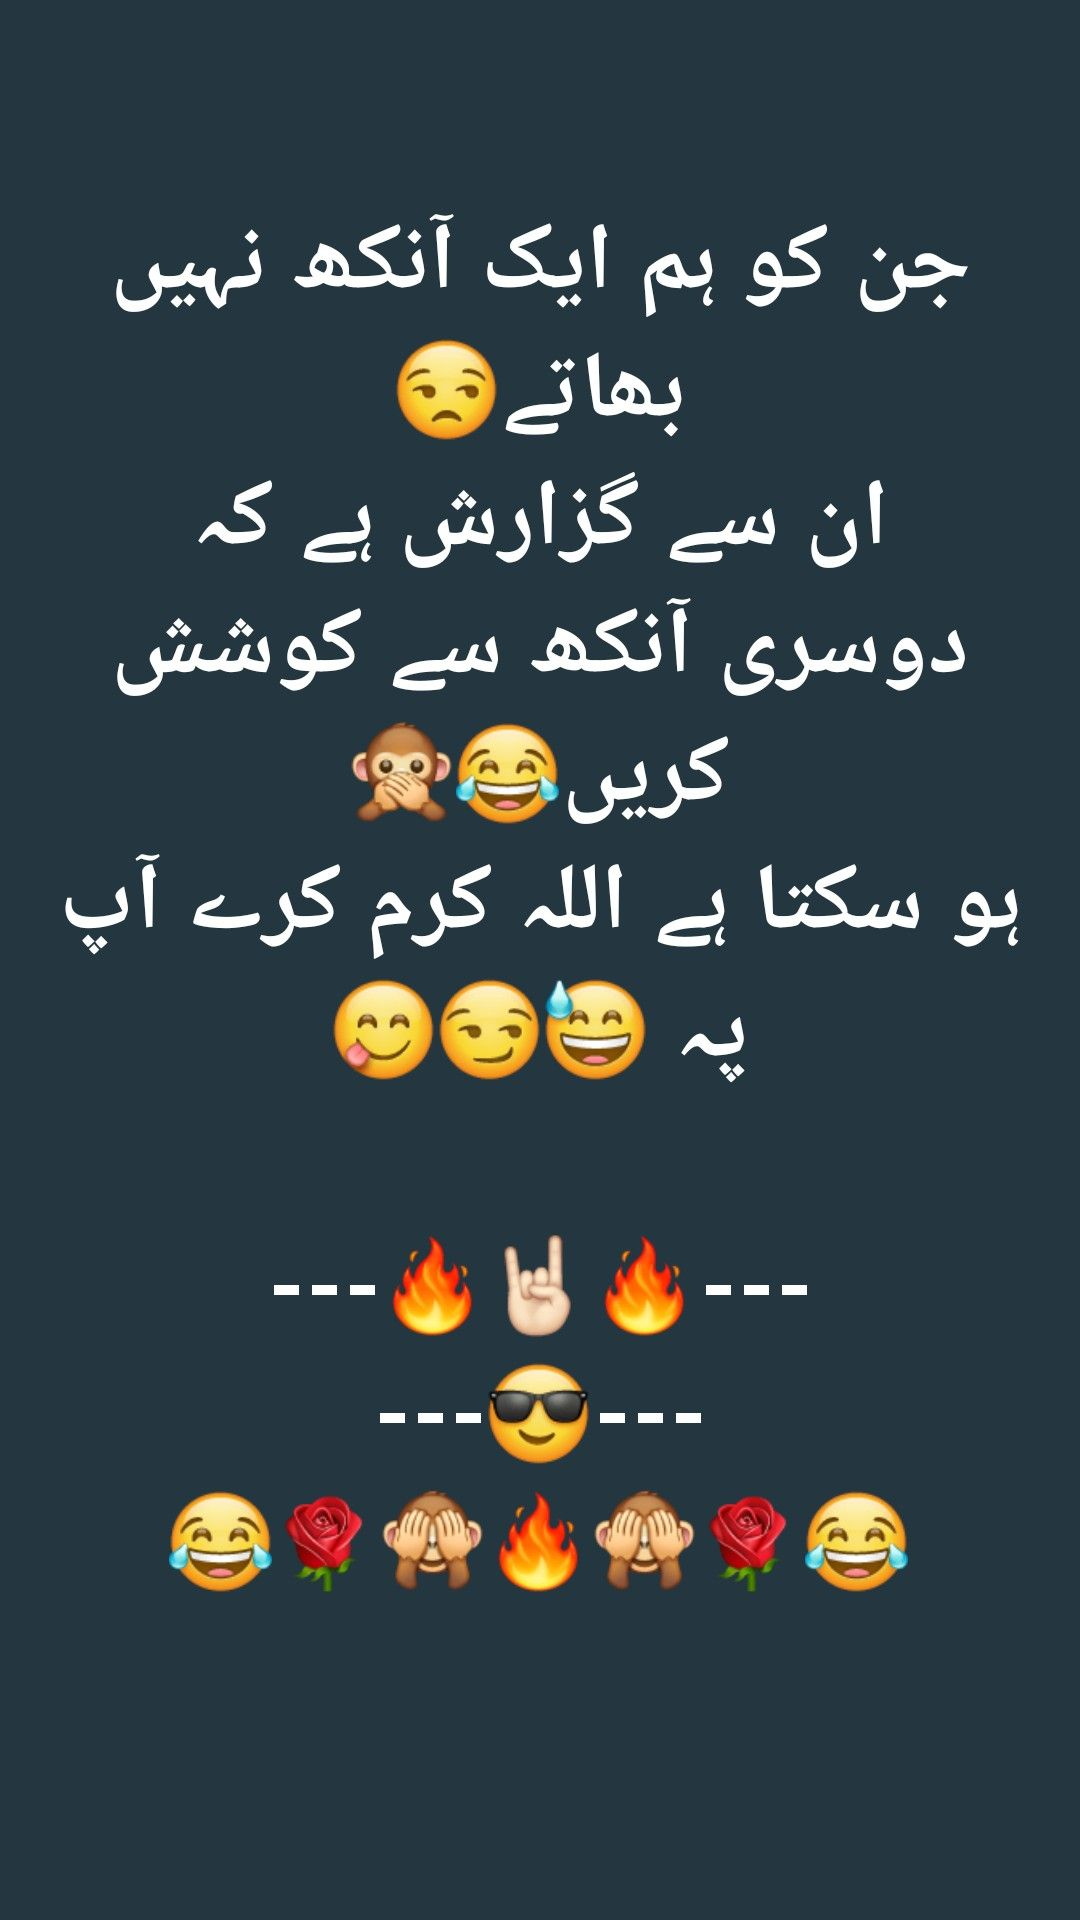 Pin By Samreen On My Board In 2020 Fun Quotes Funny Cute Funny Quotes Urdu Funny Quotes